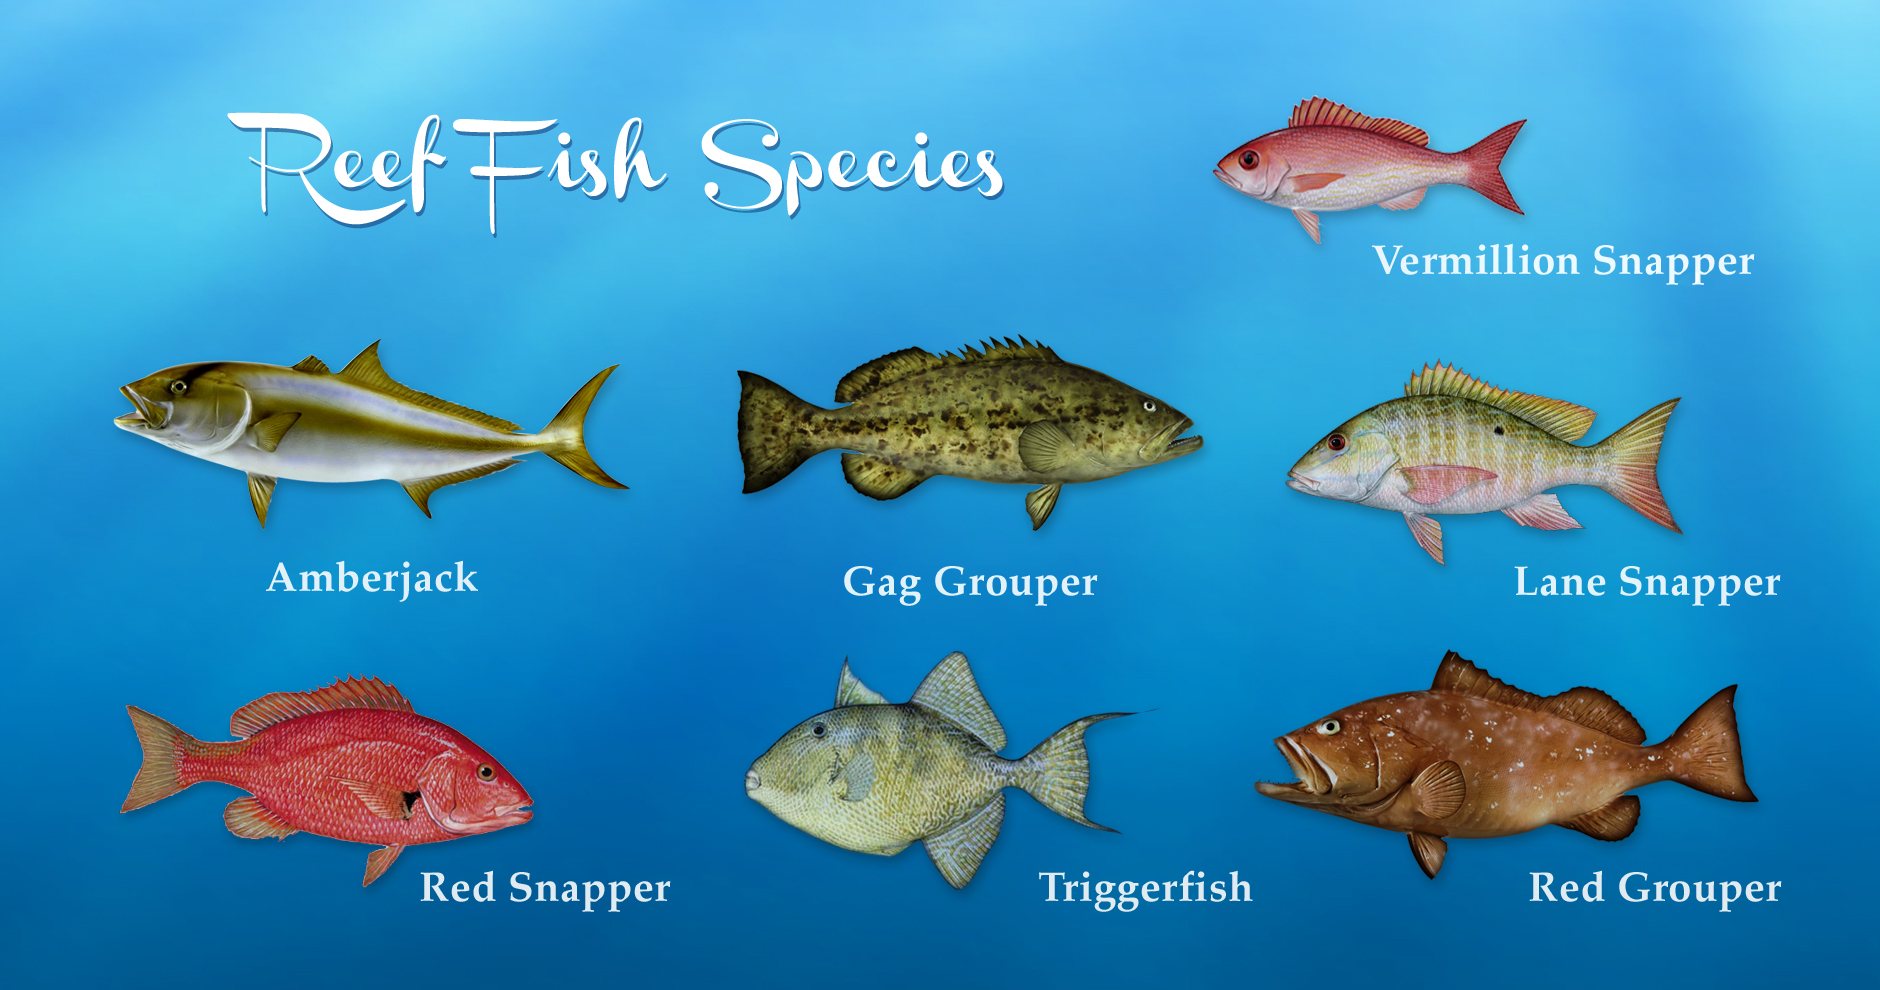 reeffish_species